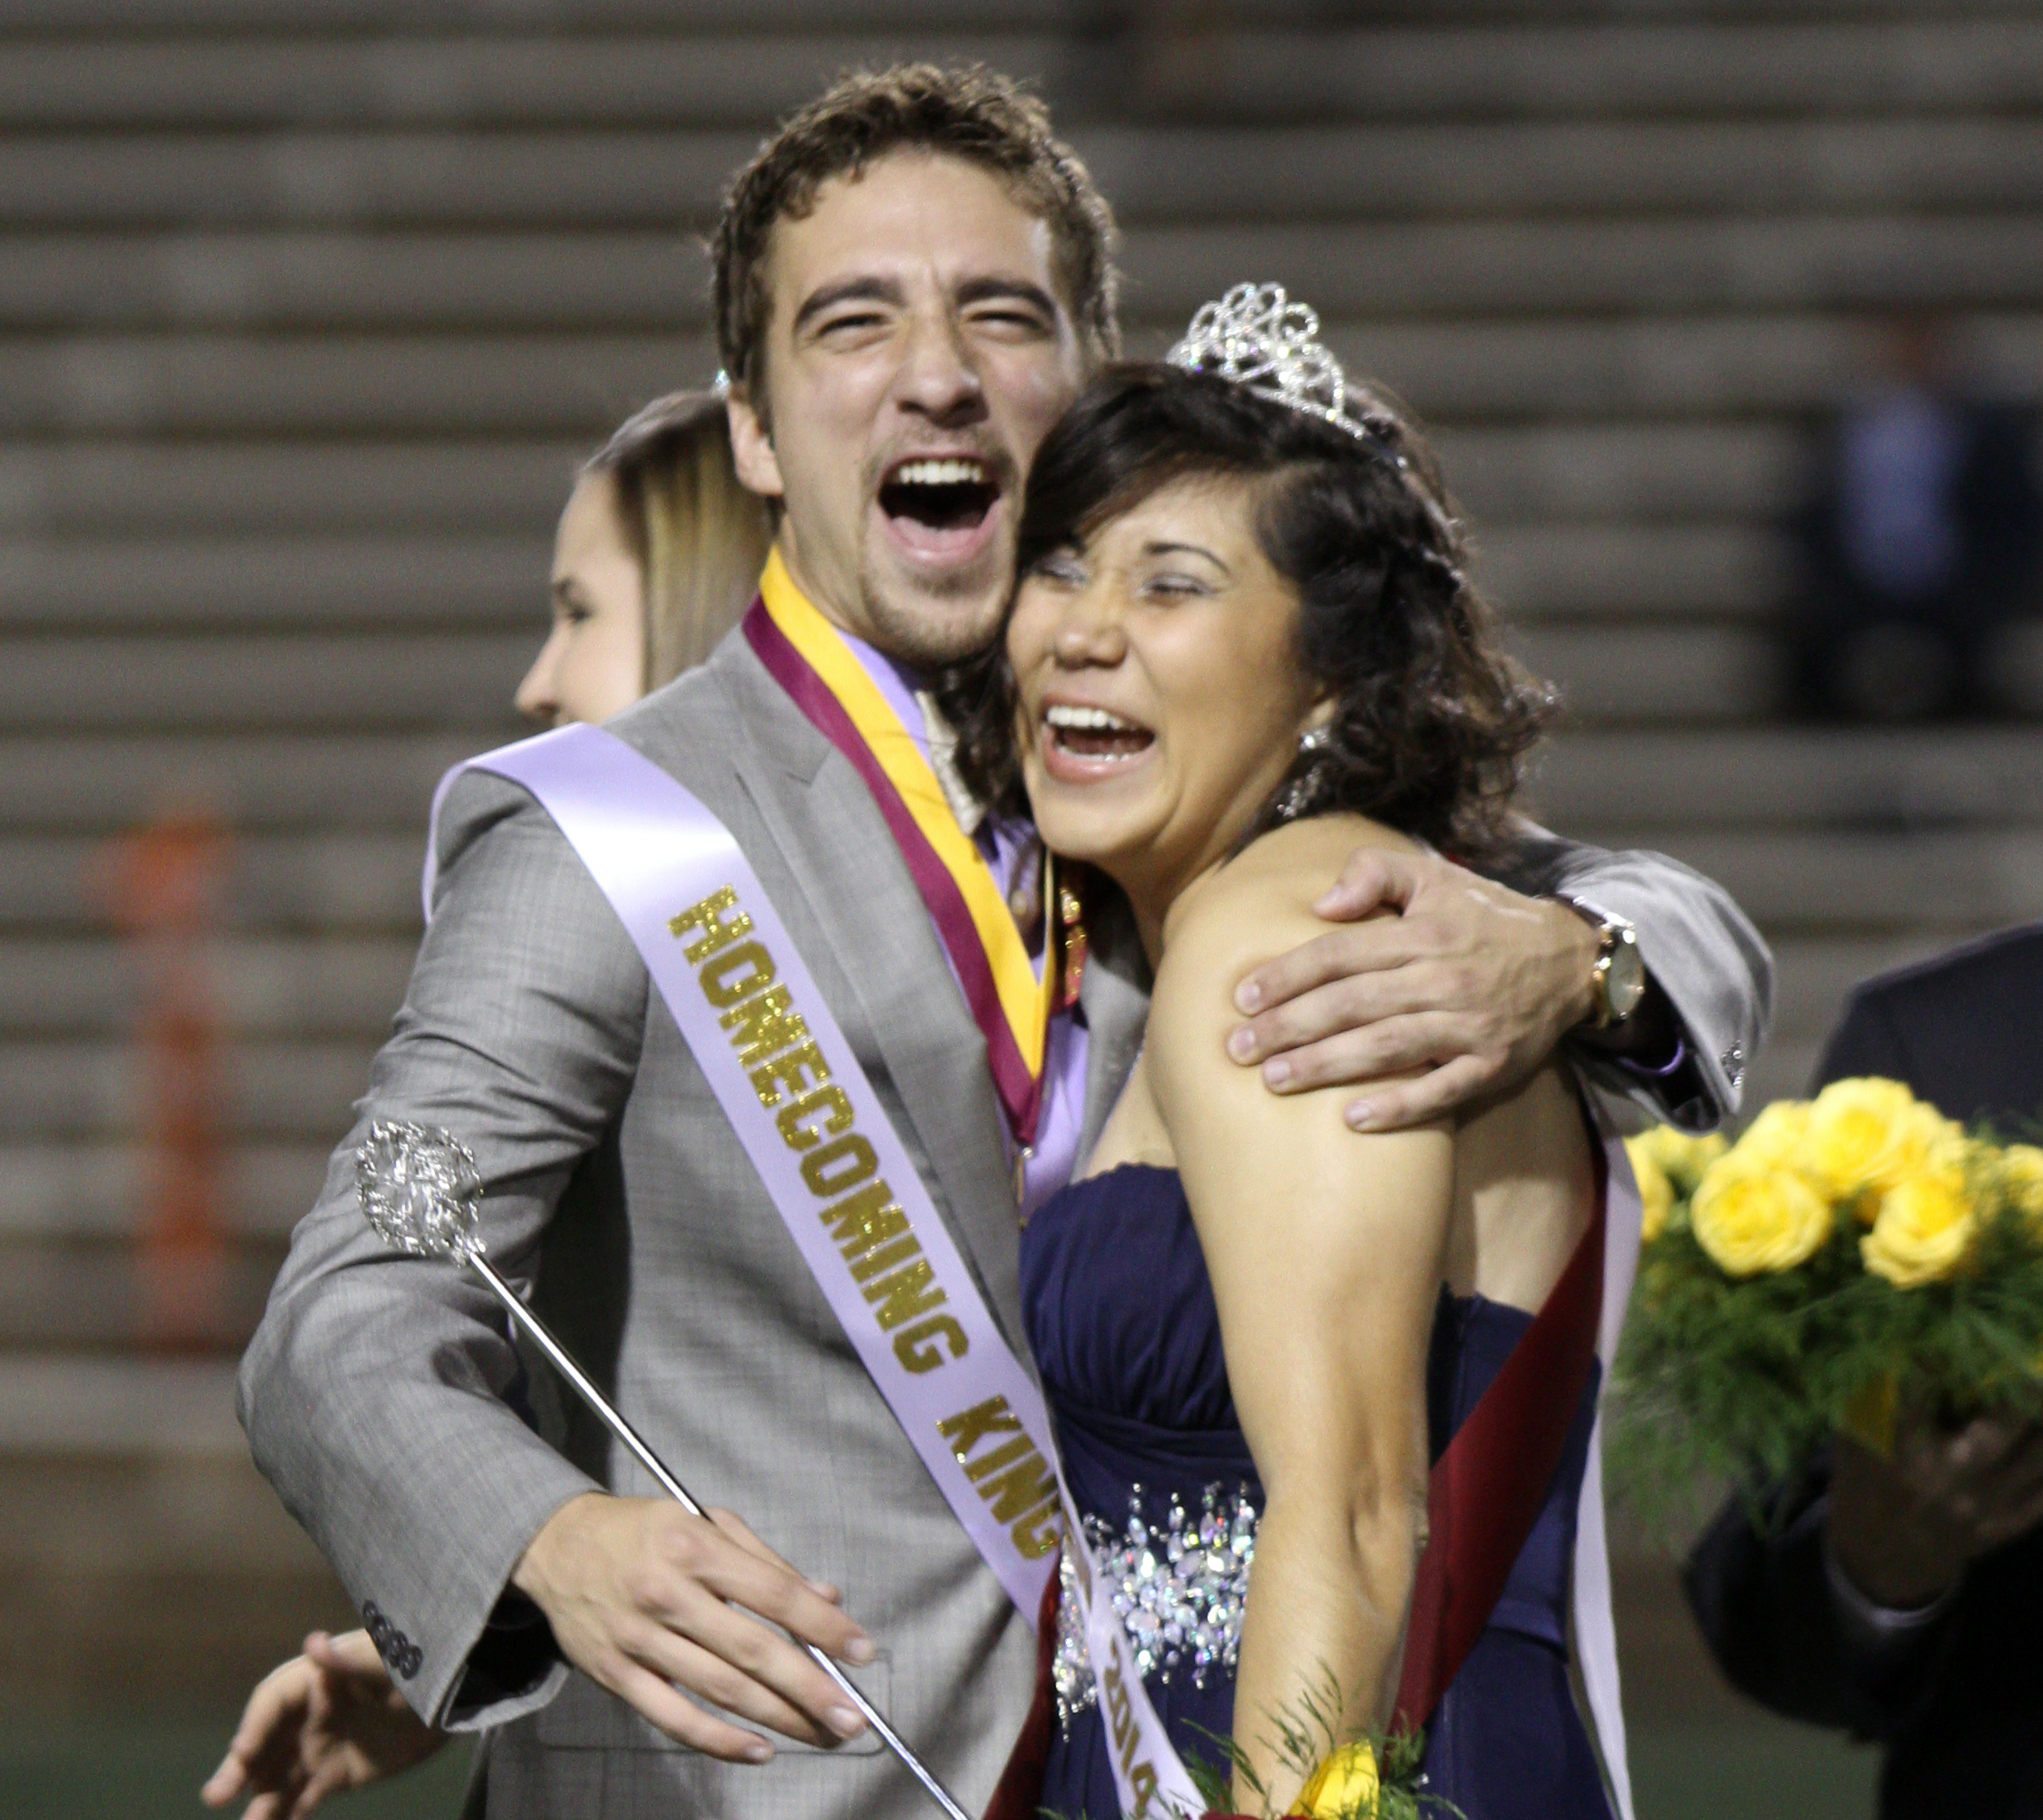 Homecoming nominations vulnerable to fraud